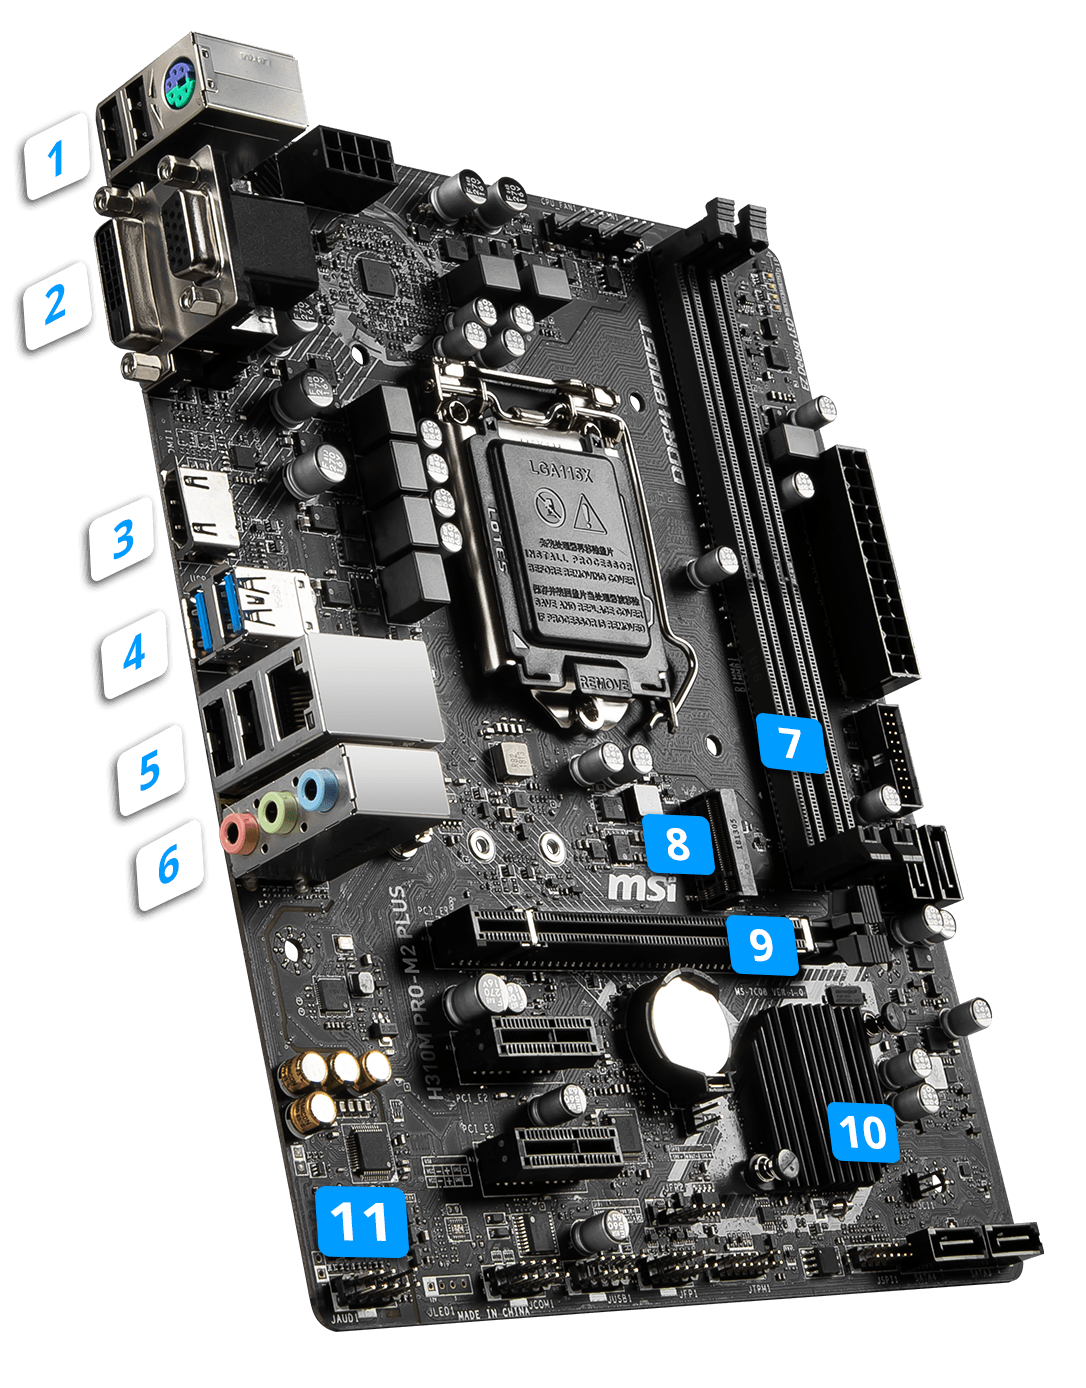 MSI H310M PRO-M2 PLUS overview